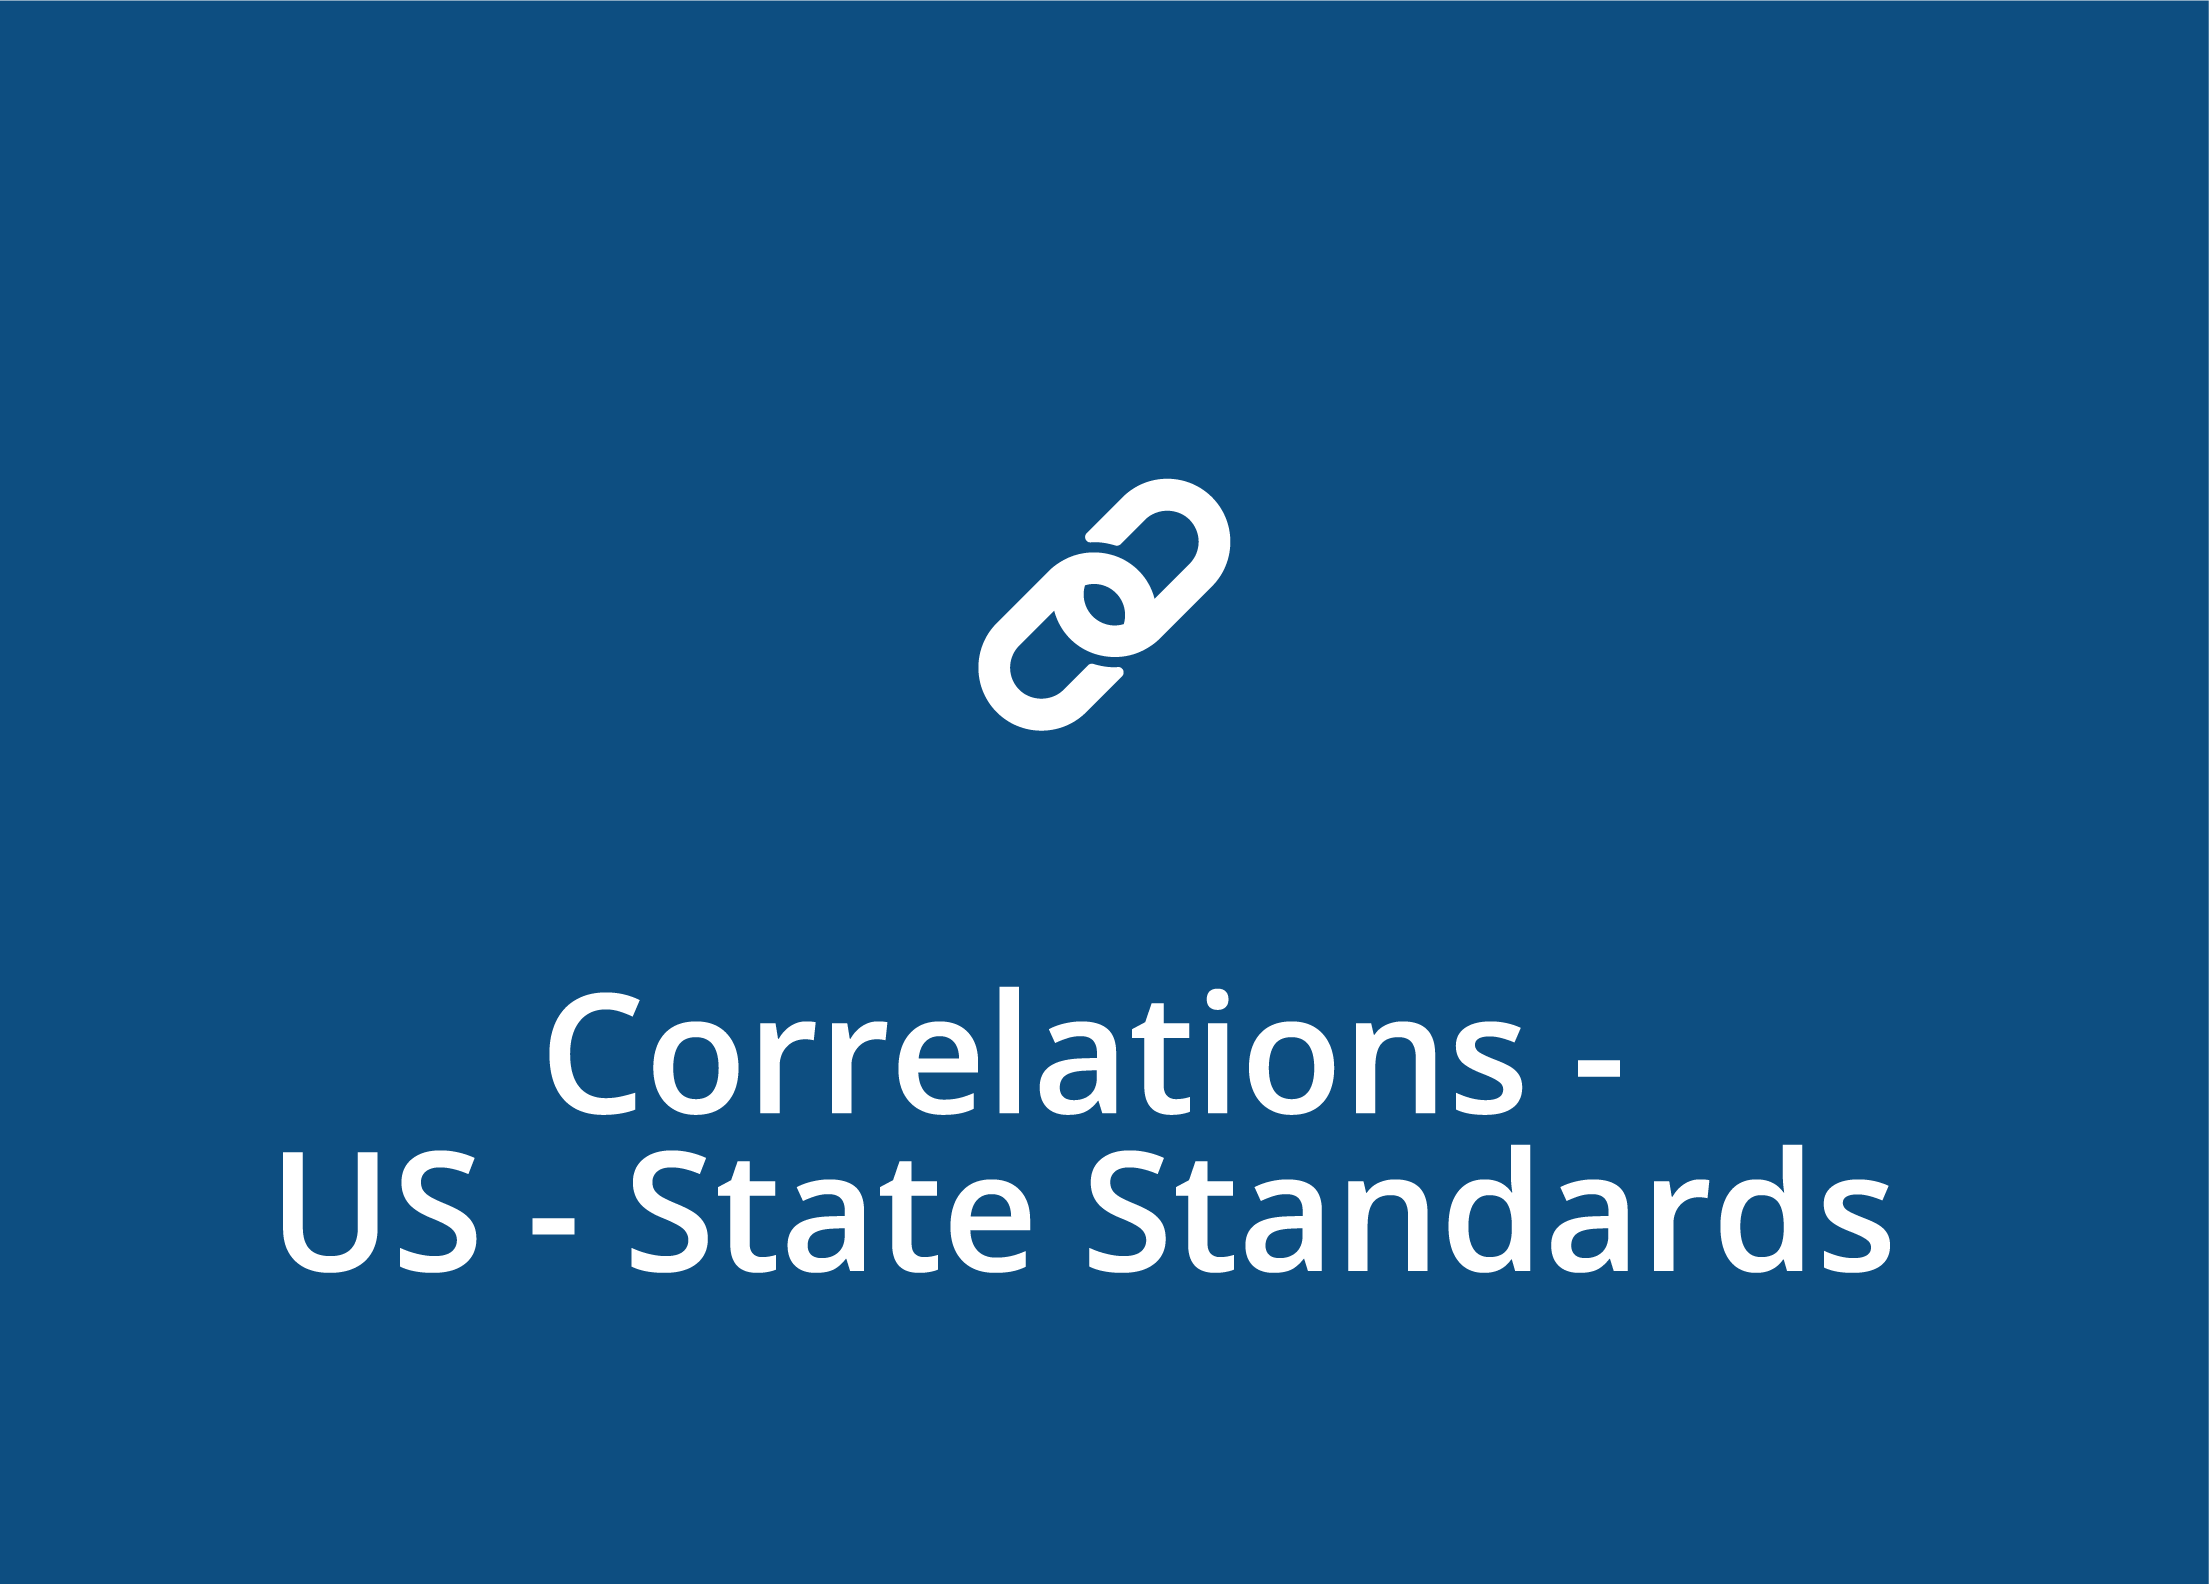 Correlations - US - State Standards